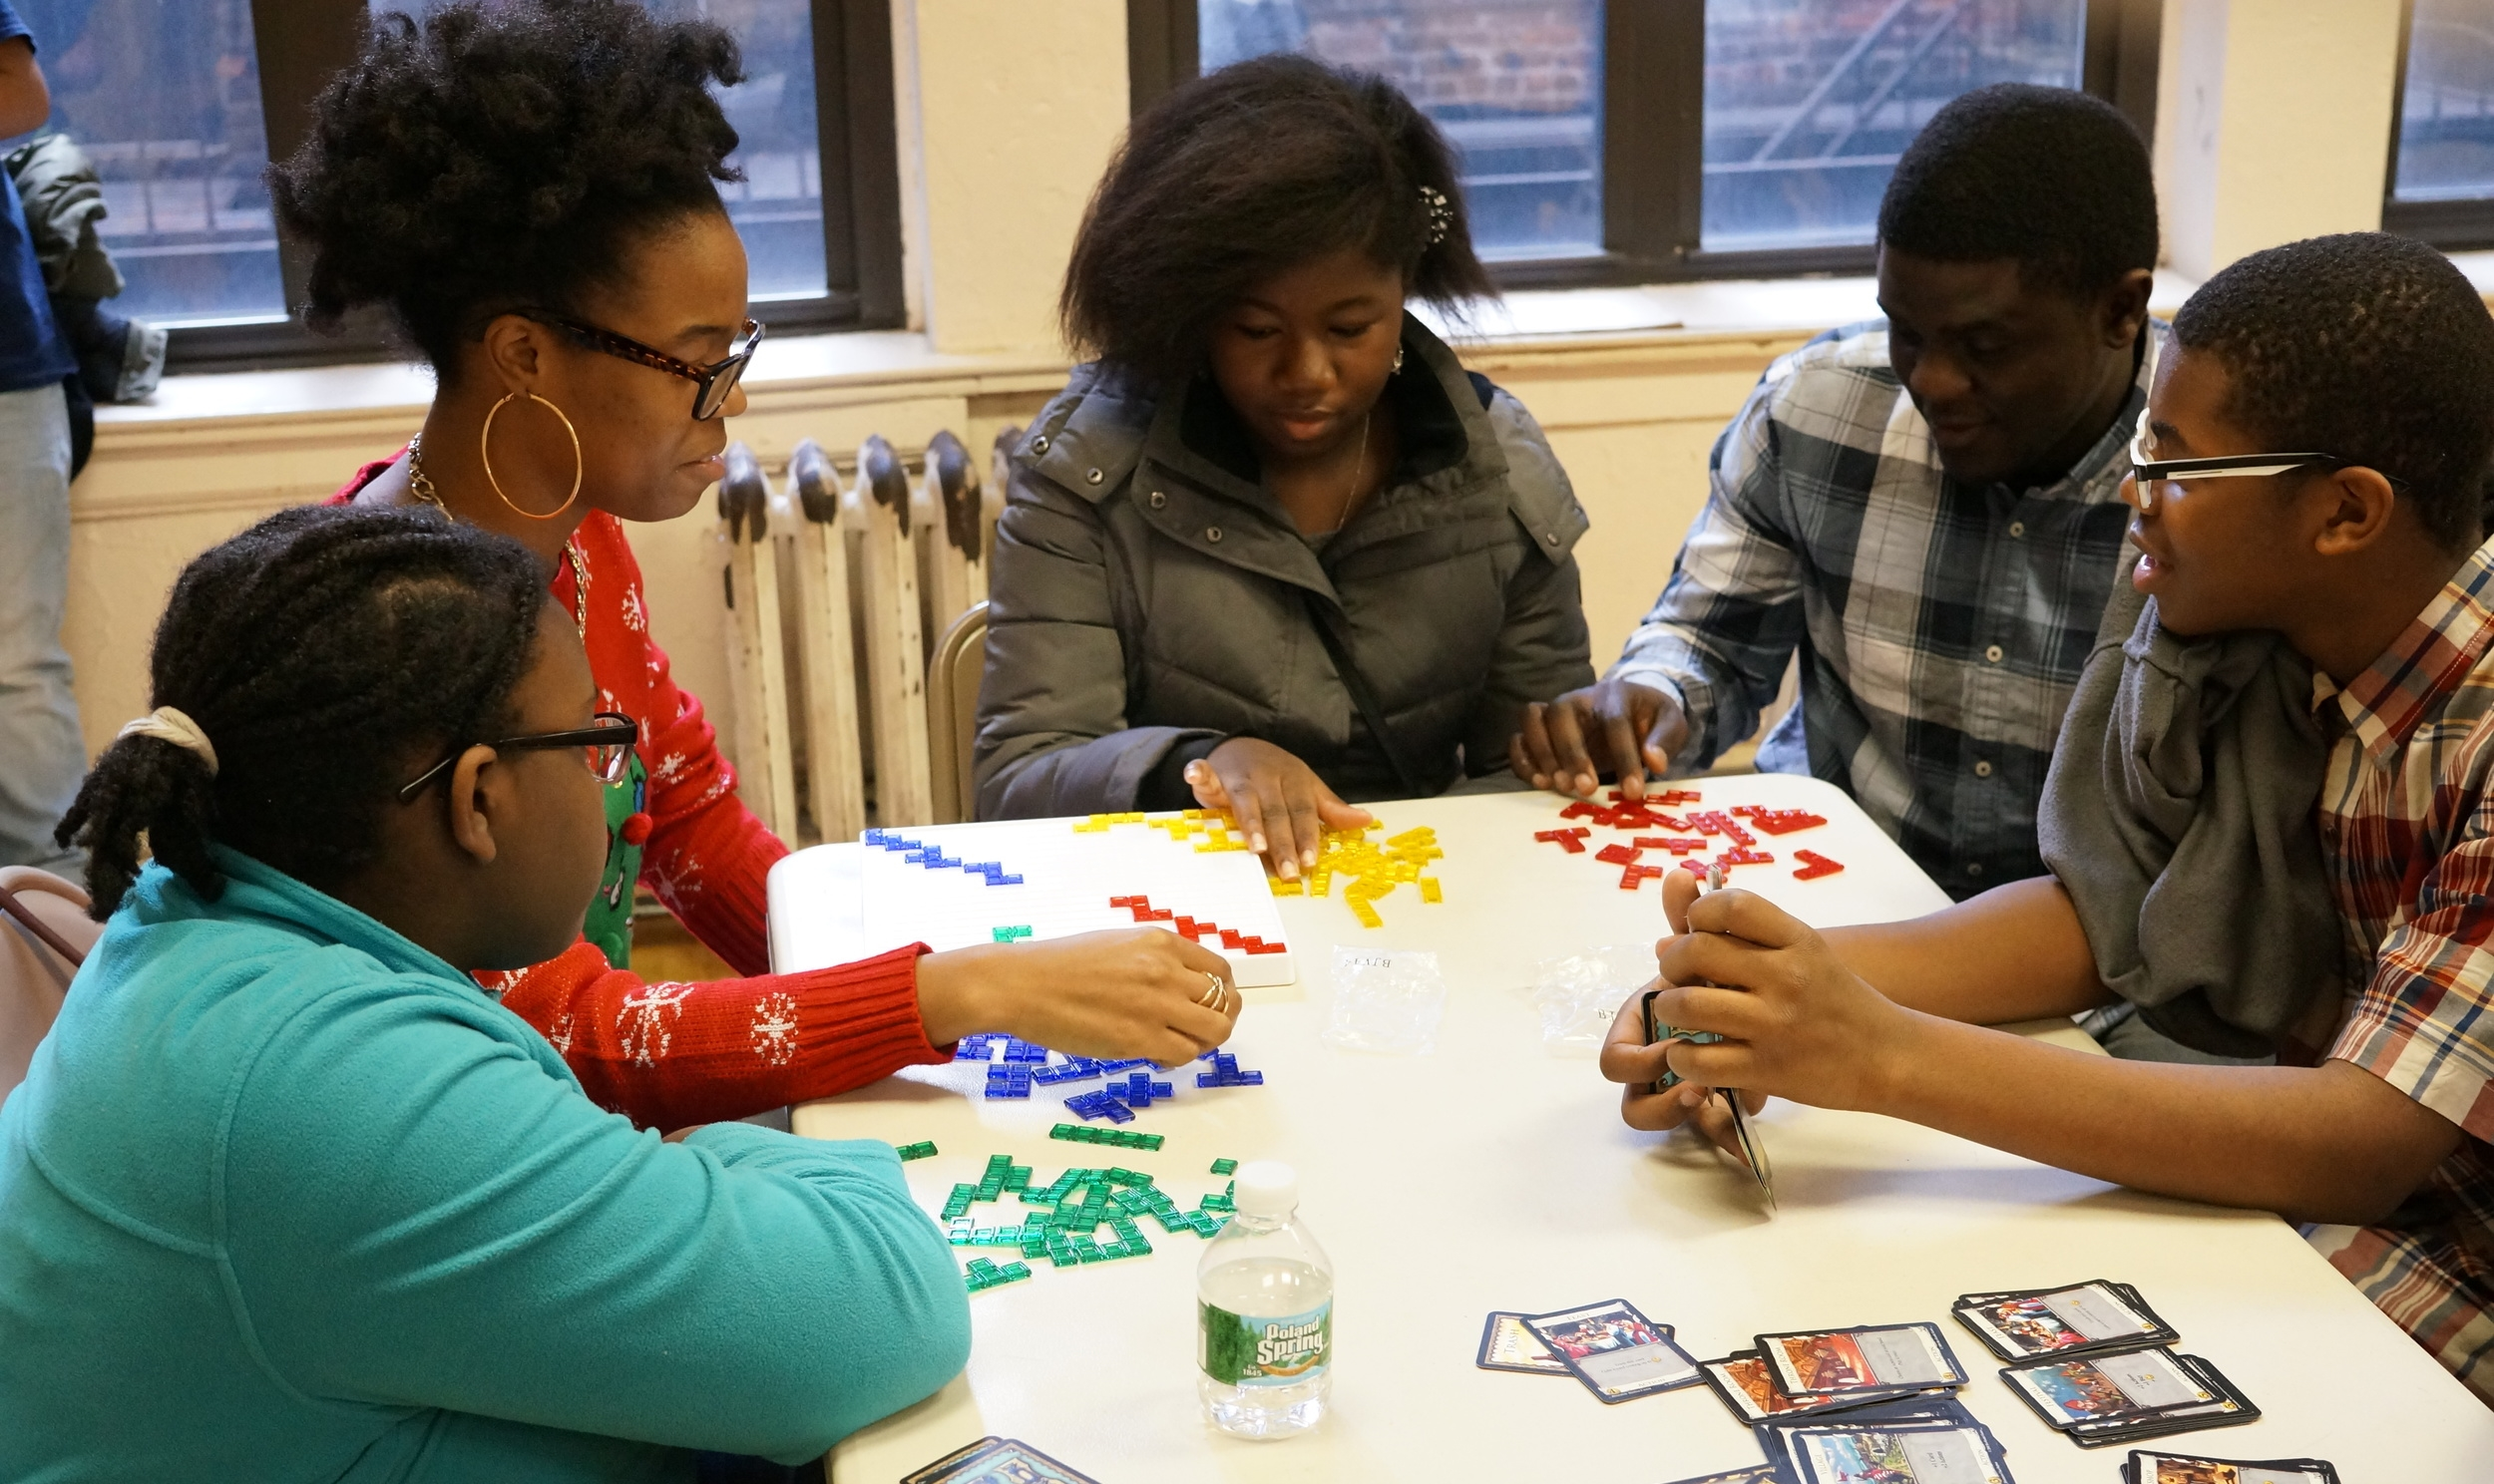 Students and staff play Blokus